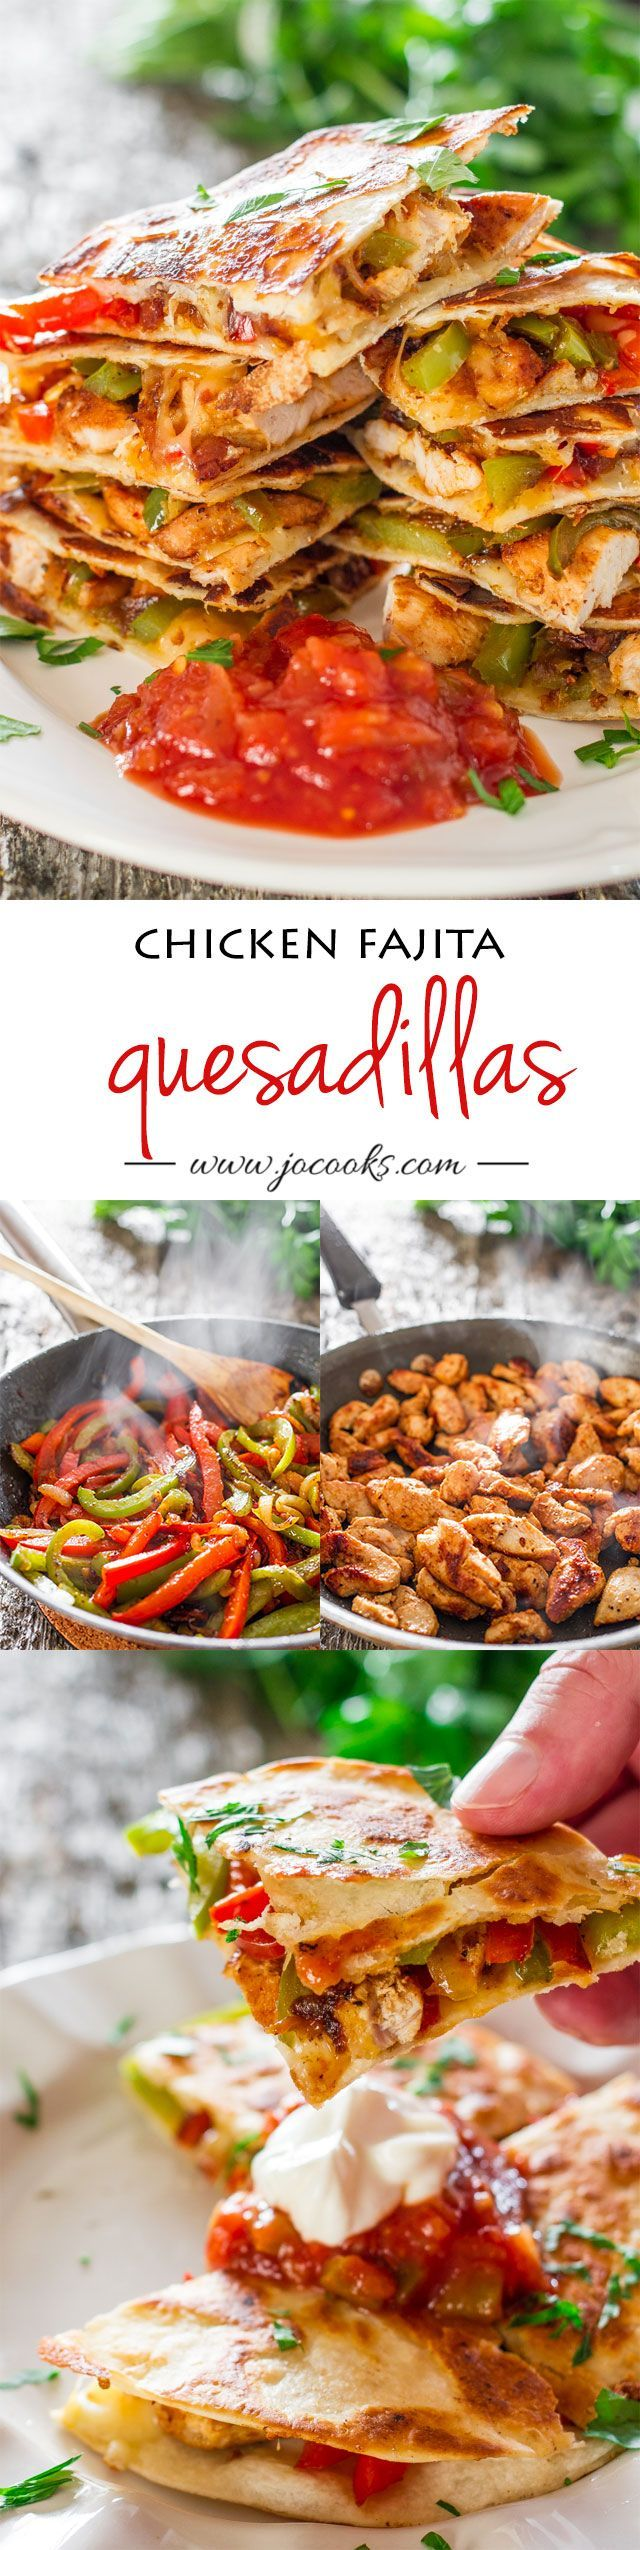 Chicken Fajita Quesadillas ~ sauteed onions, red and green peppers, perfectly seasoned chicken breast, melted cheese, between two tortillas... Simply yummy.